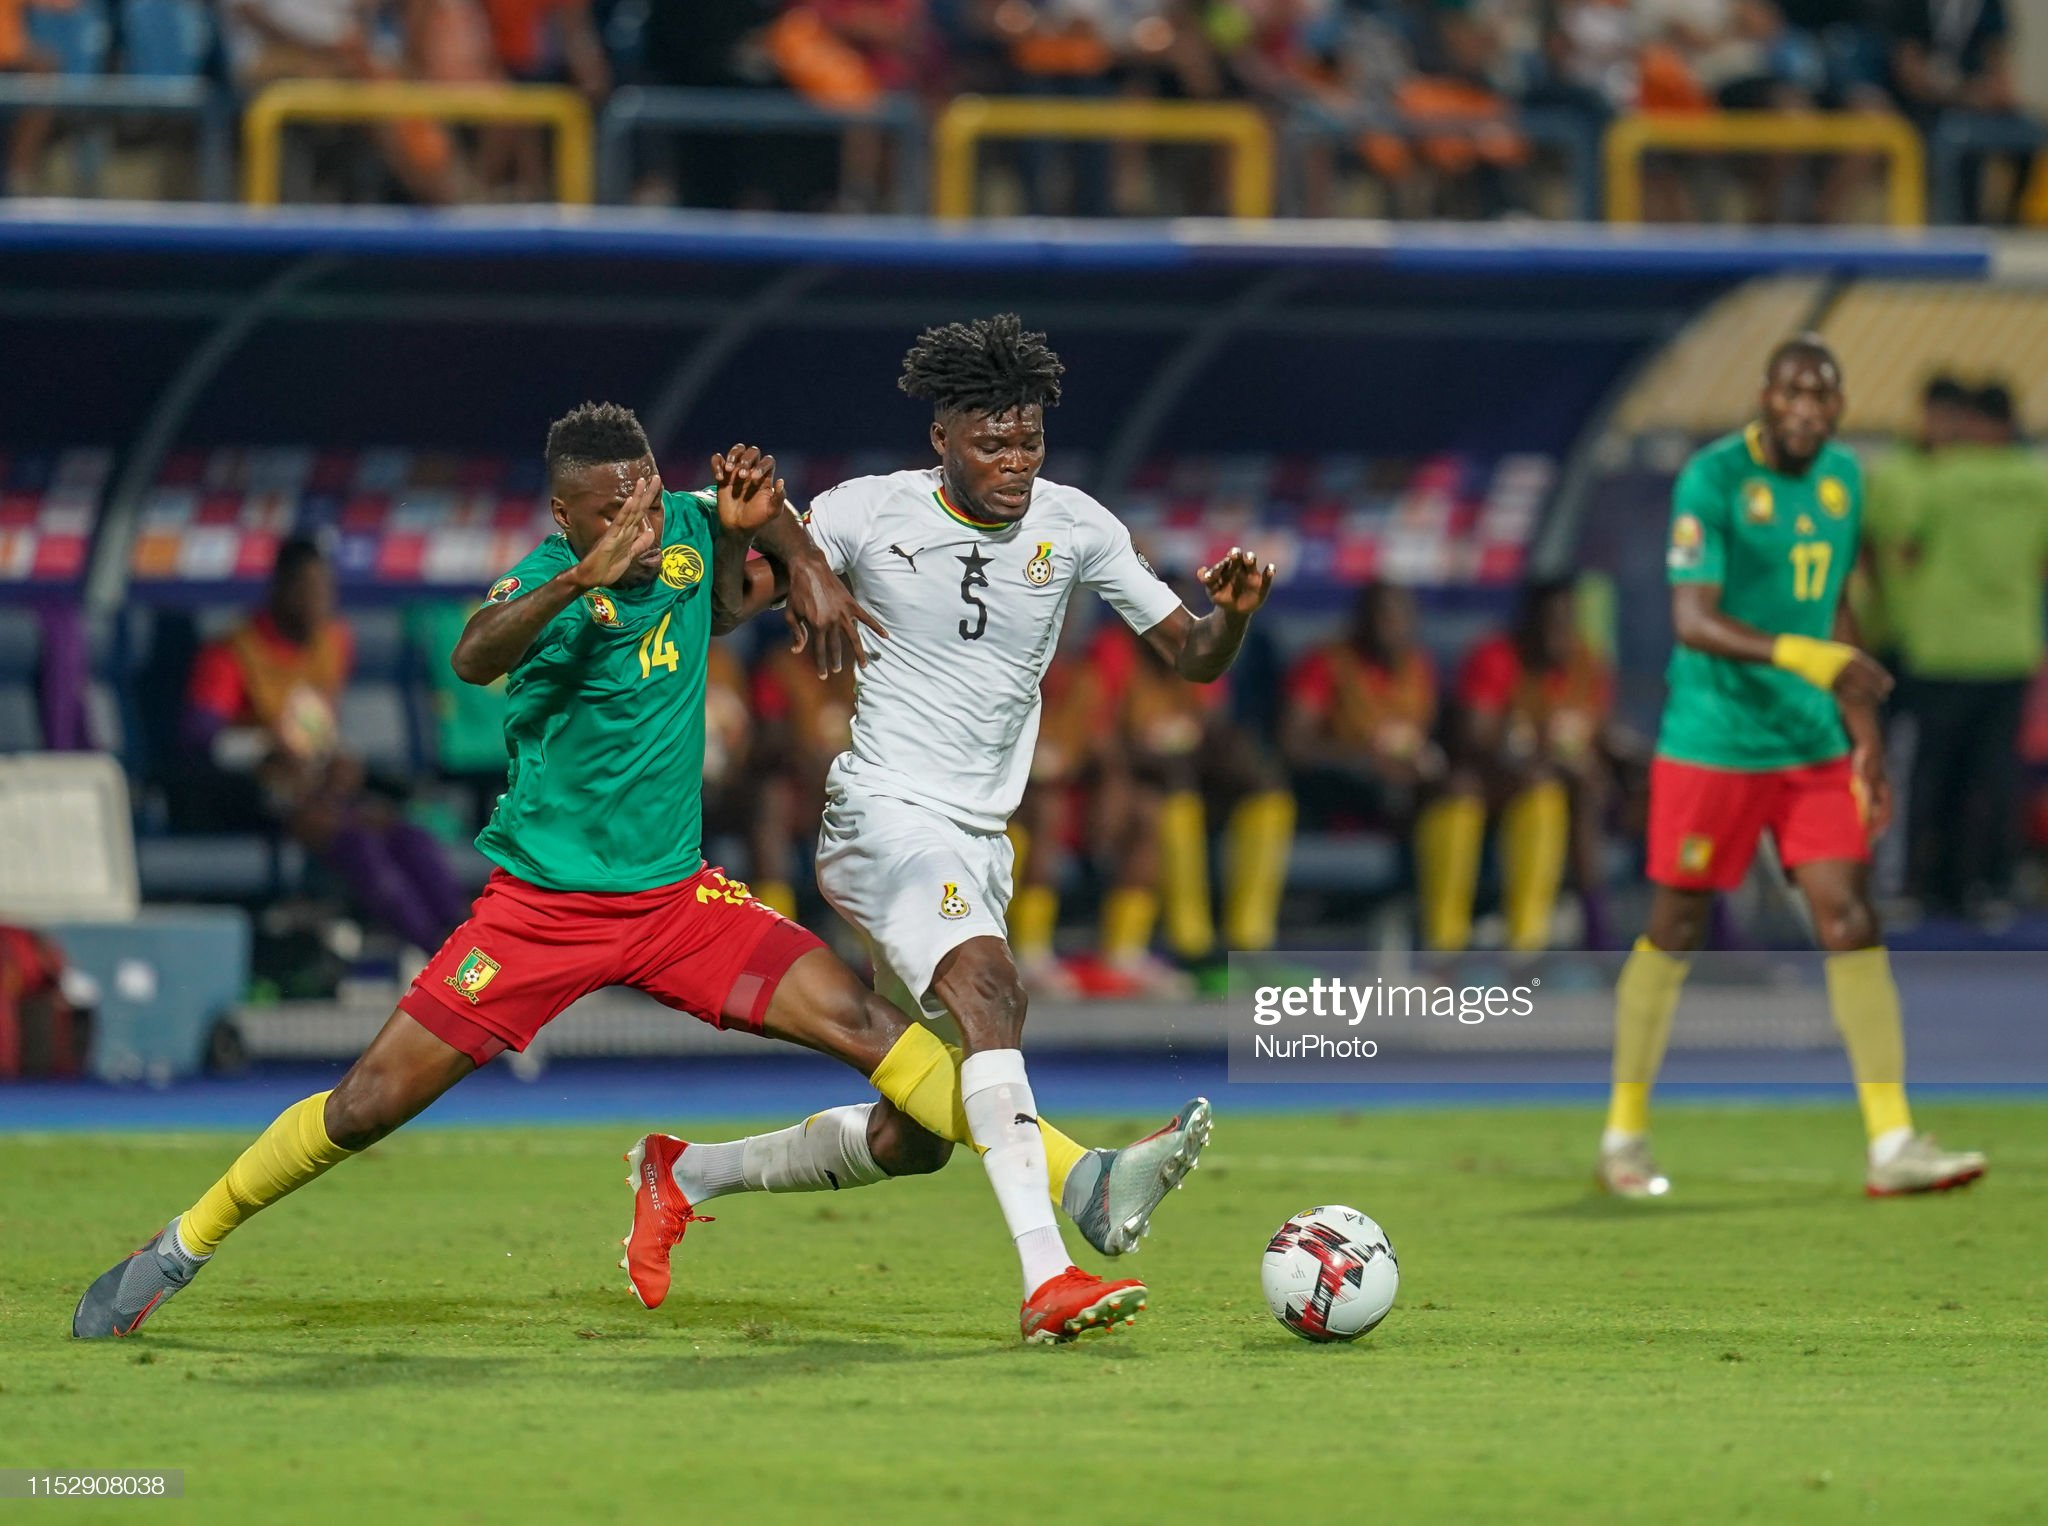 Benin v Guinea-Bissau - 2019 African Cup of Nations : News Photo